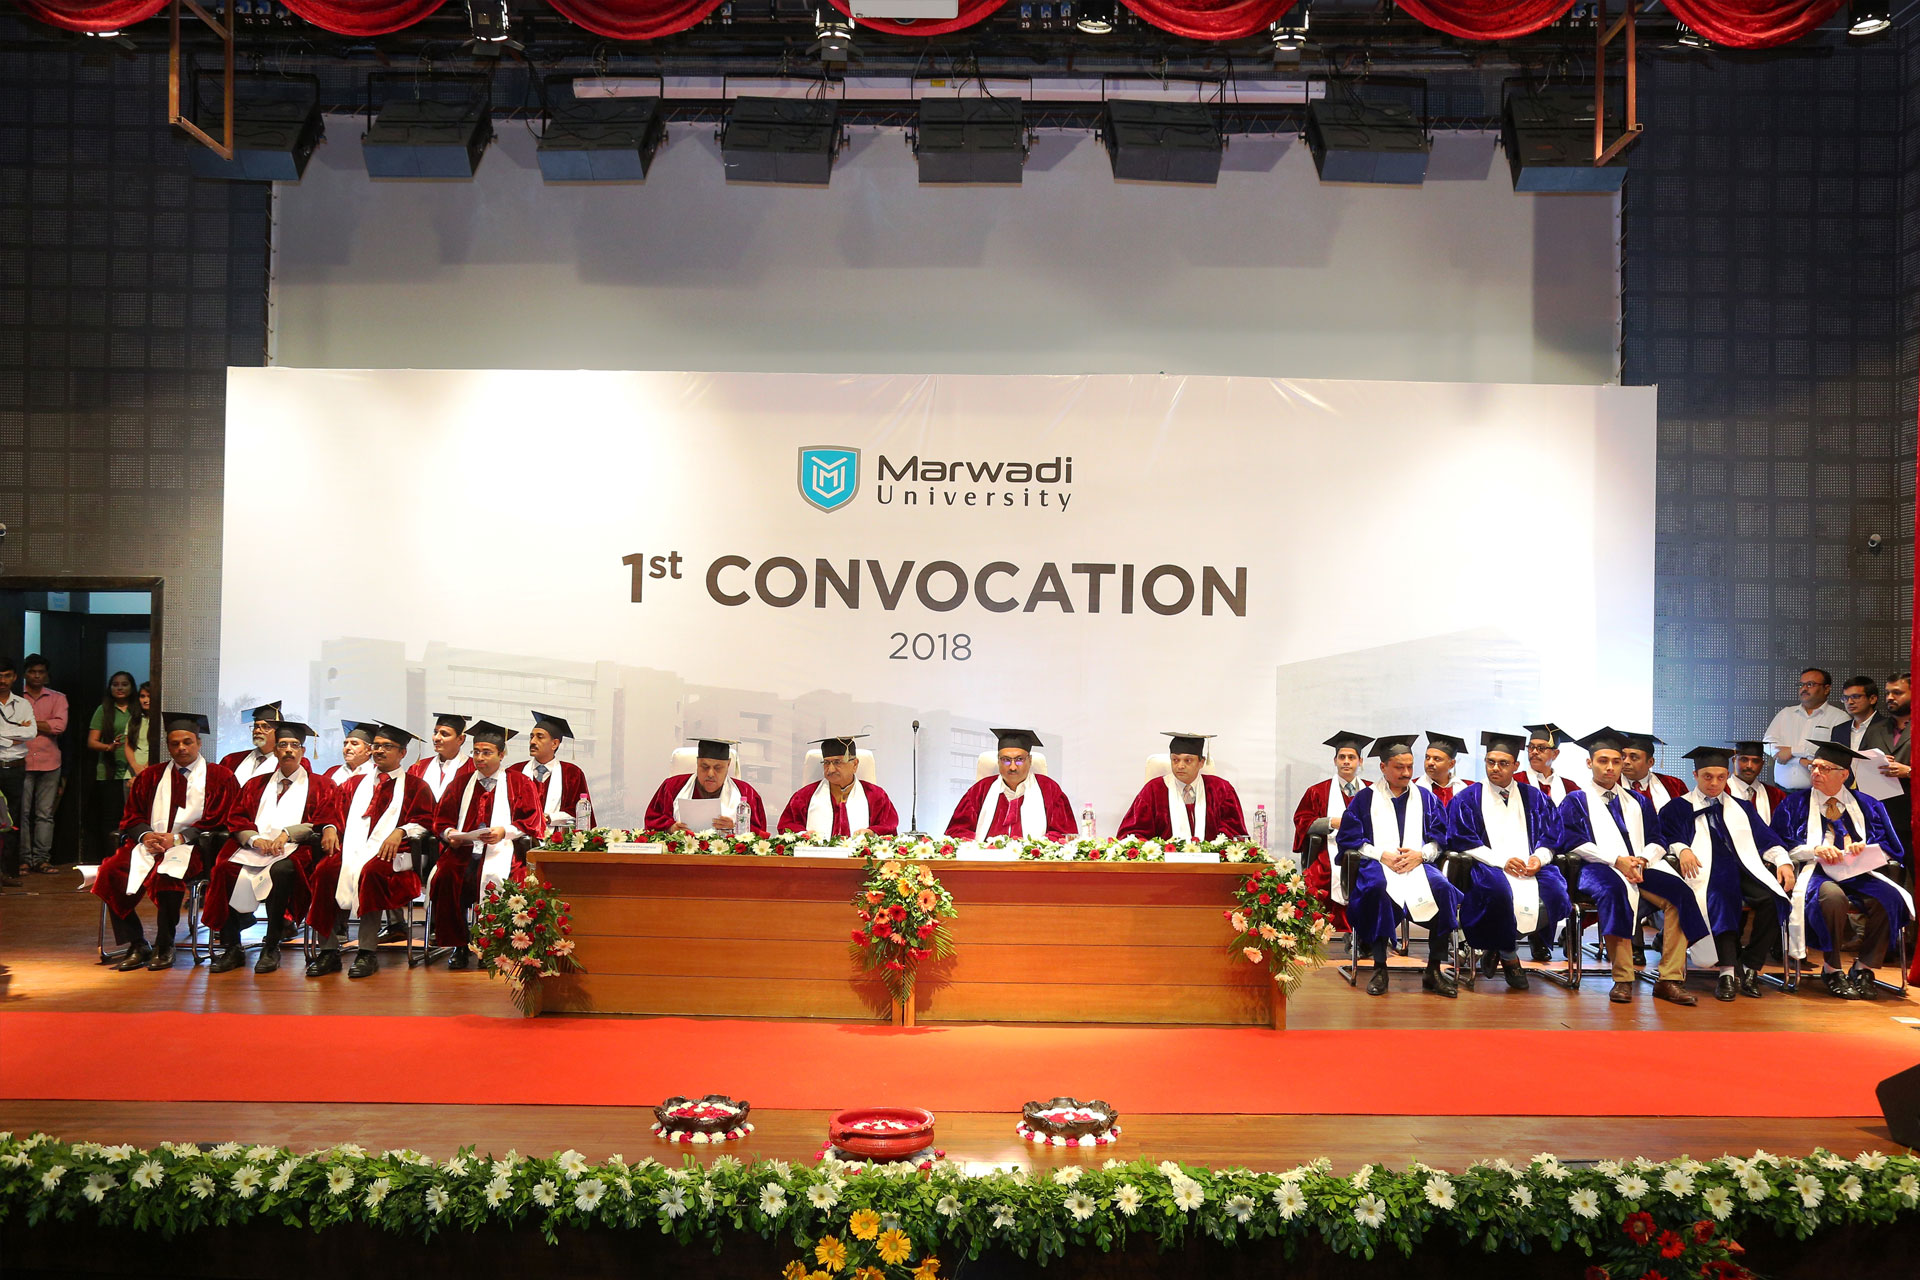 1ST CONVOCATION 2018